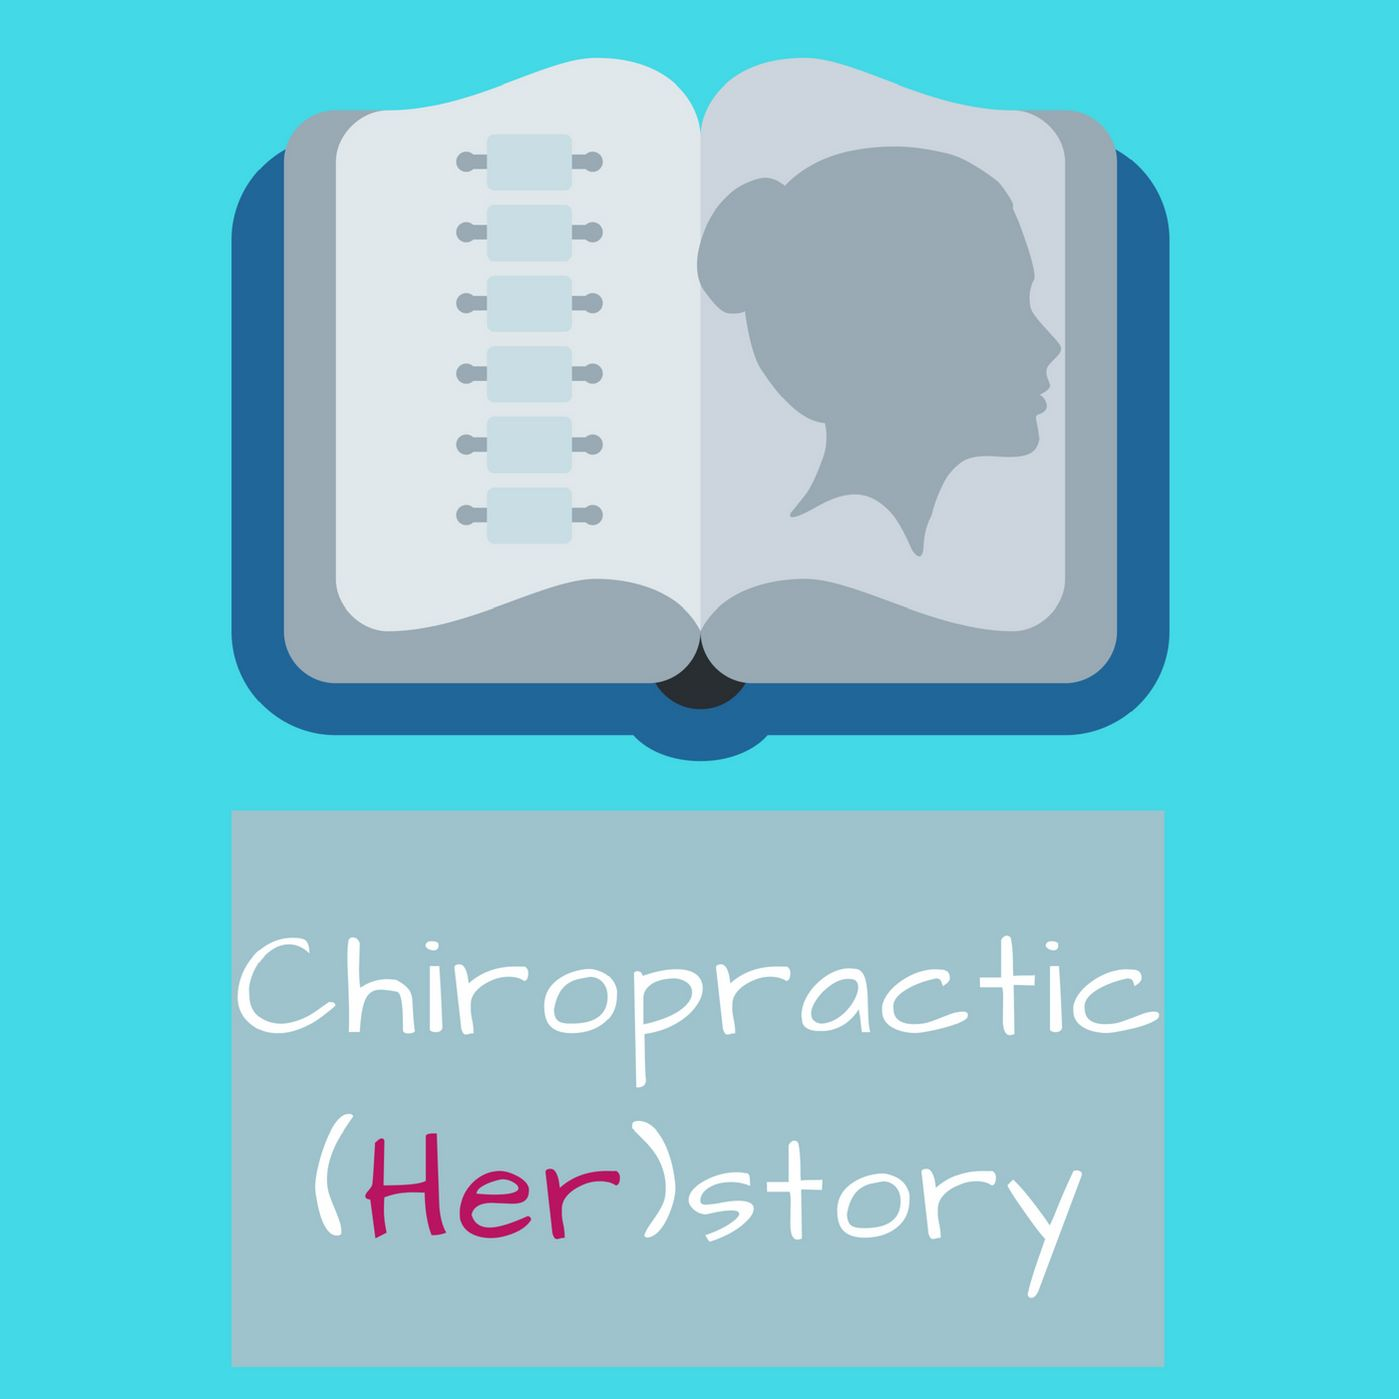 Dr. Lona Cook- Chiropractic (Her)story Episode 44